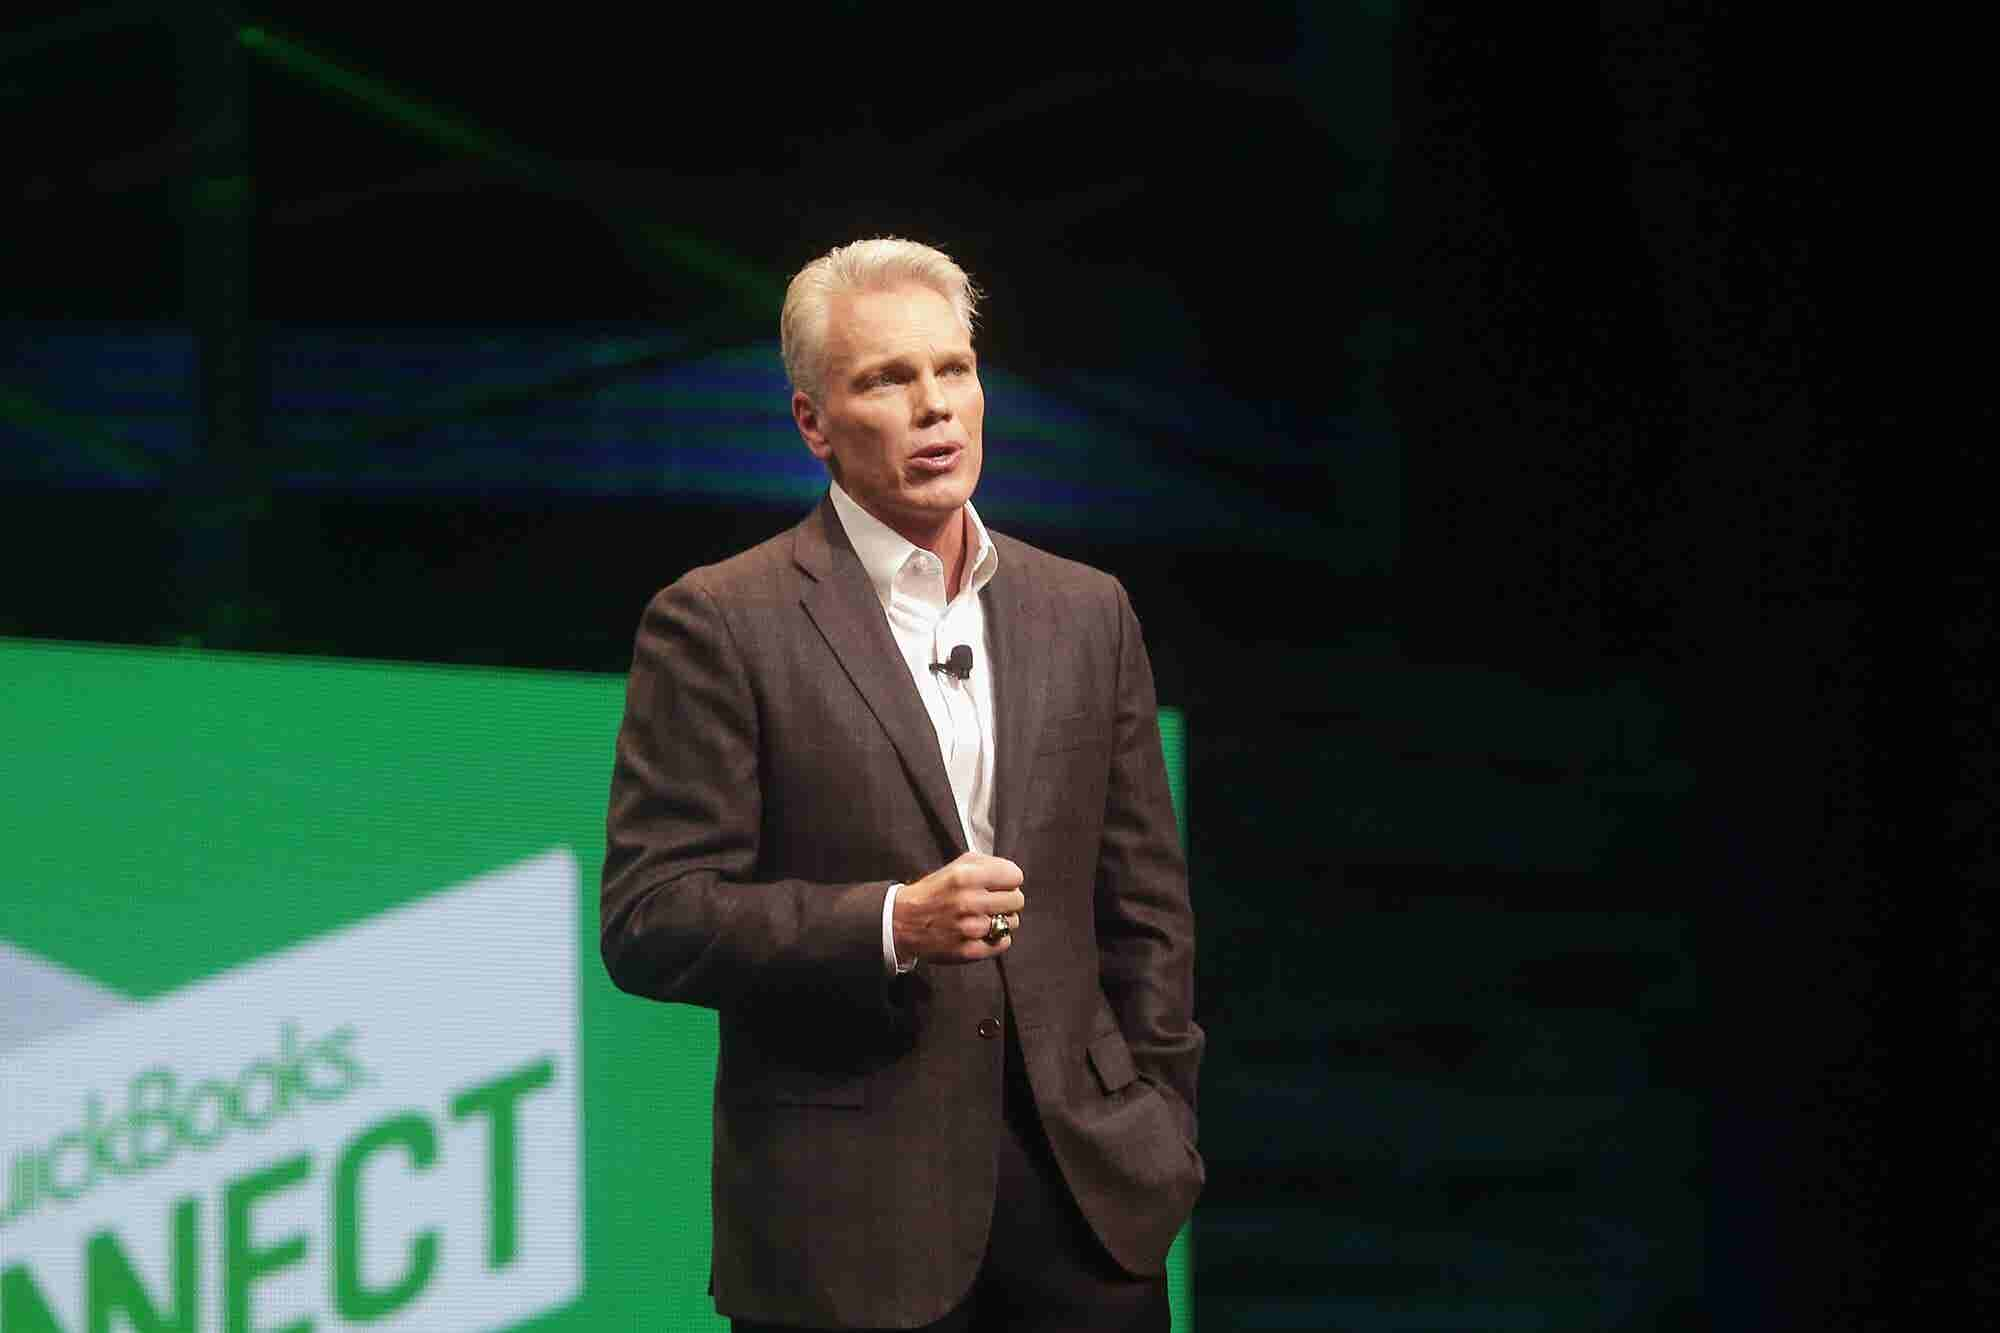 Leadership and Legacy Lessons From Former Intuit CEO Brad Smith